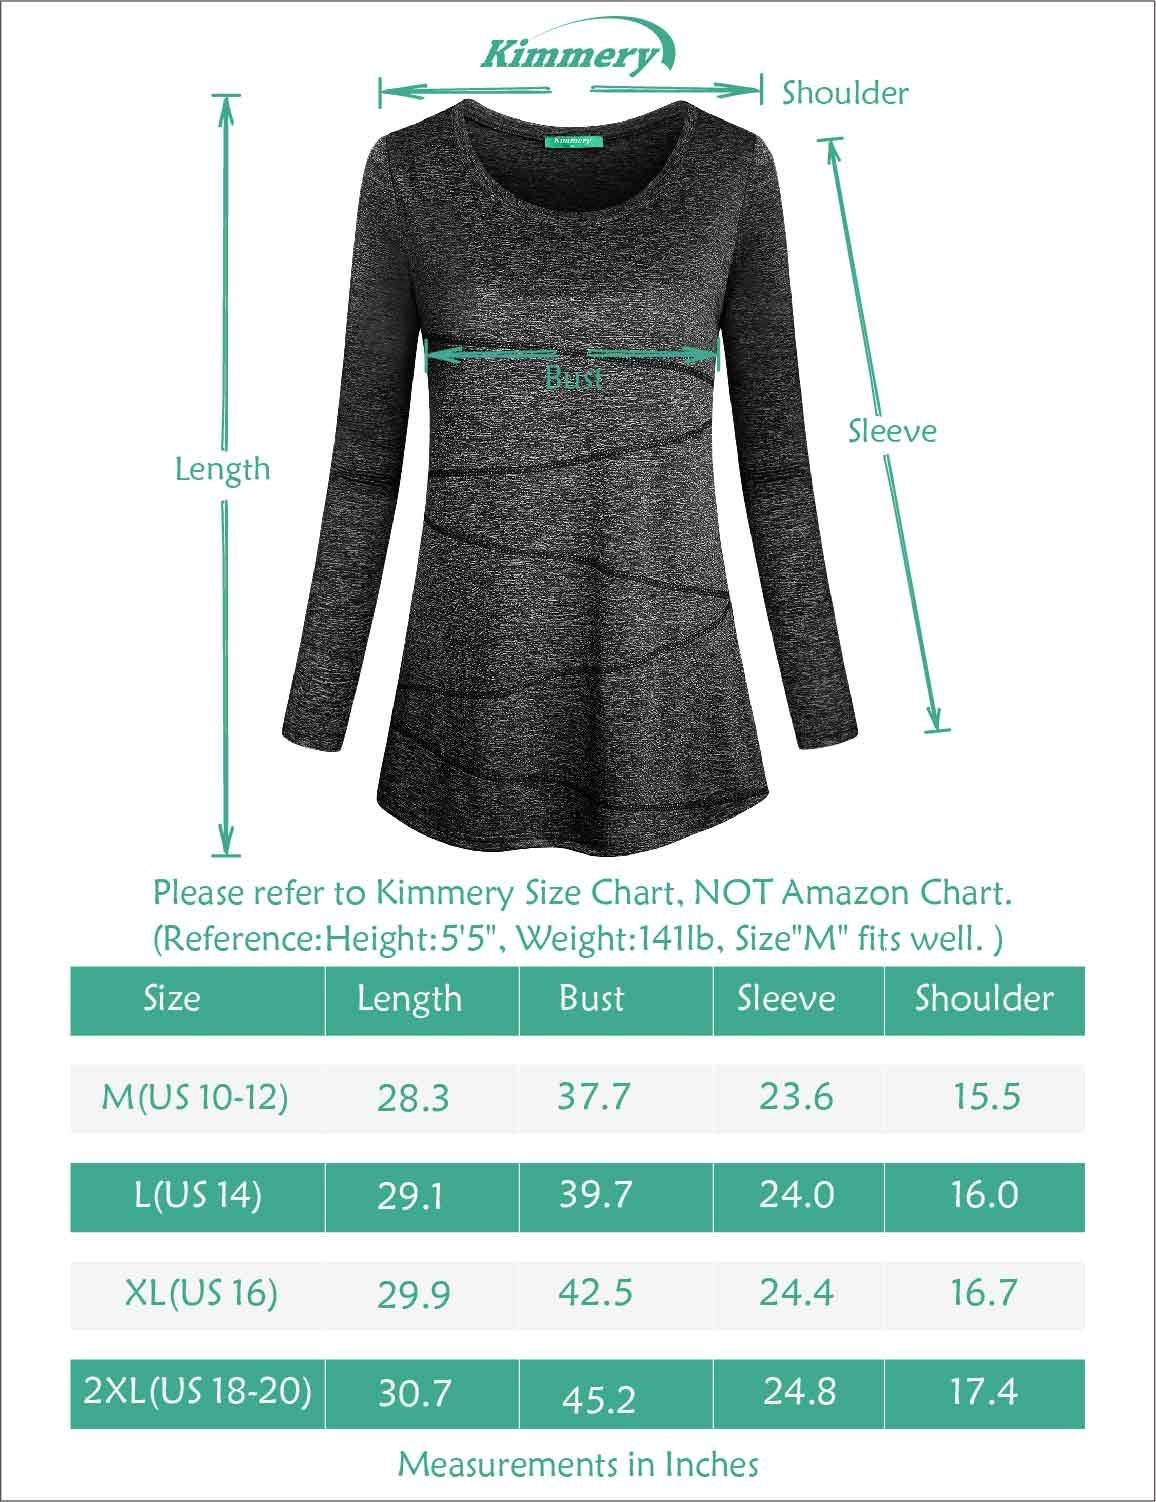 Kimmery Workout Shirts for Women, Ladies Top Round Neck Long Sleeve Heathered Yoga Blouse Moisture Wicking Sun Protection Lightweight Dri Fit Tee Performance Black Medium by Kimmery (Image #5)